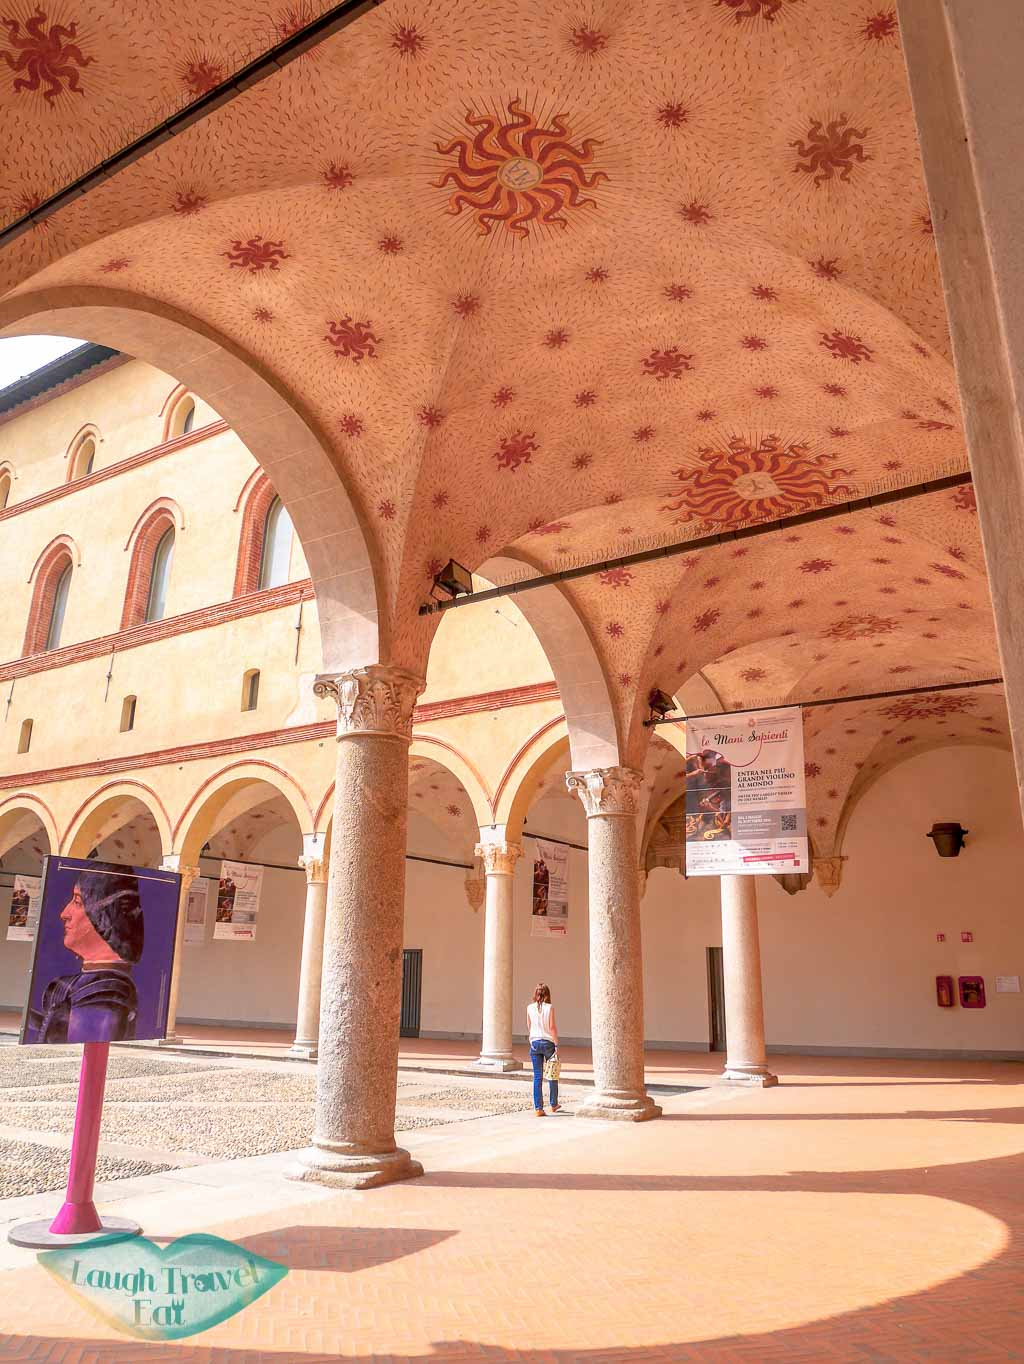 inner courtyard Sforza Castle, Milan, Italy - laugh travel eat